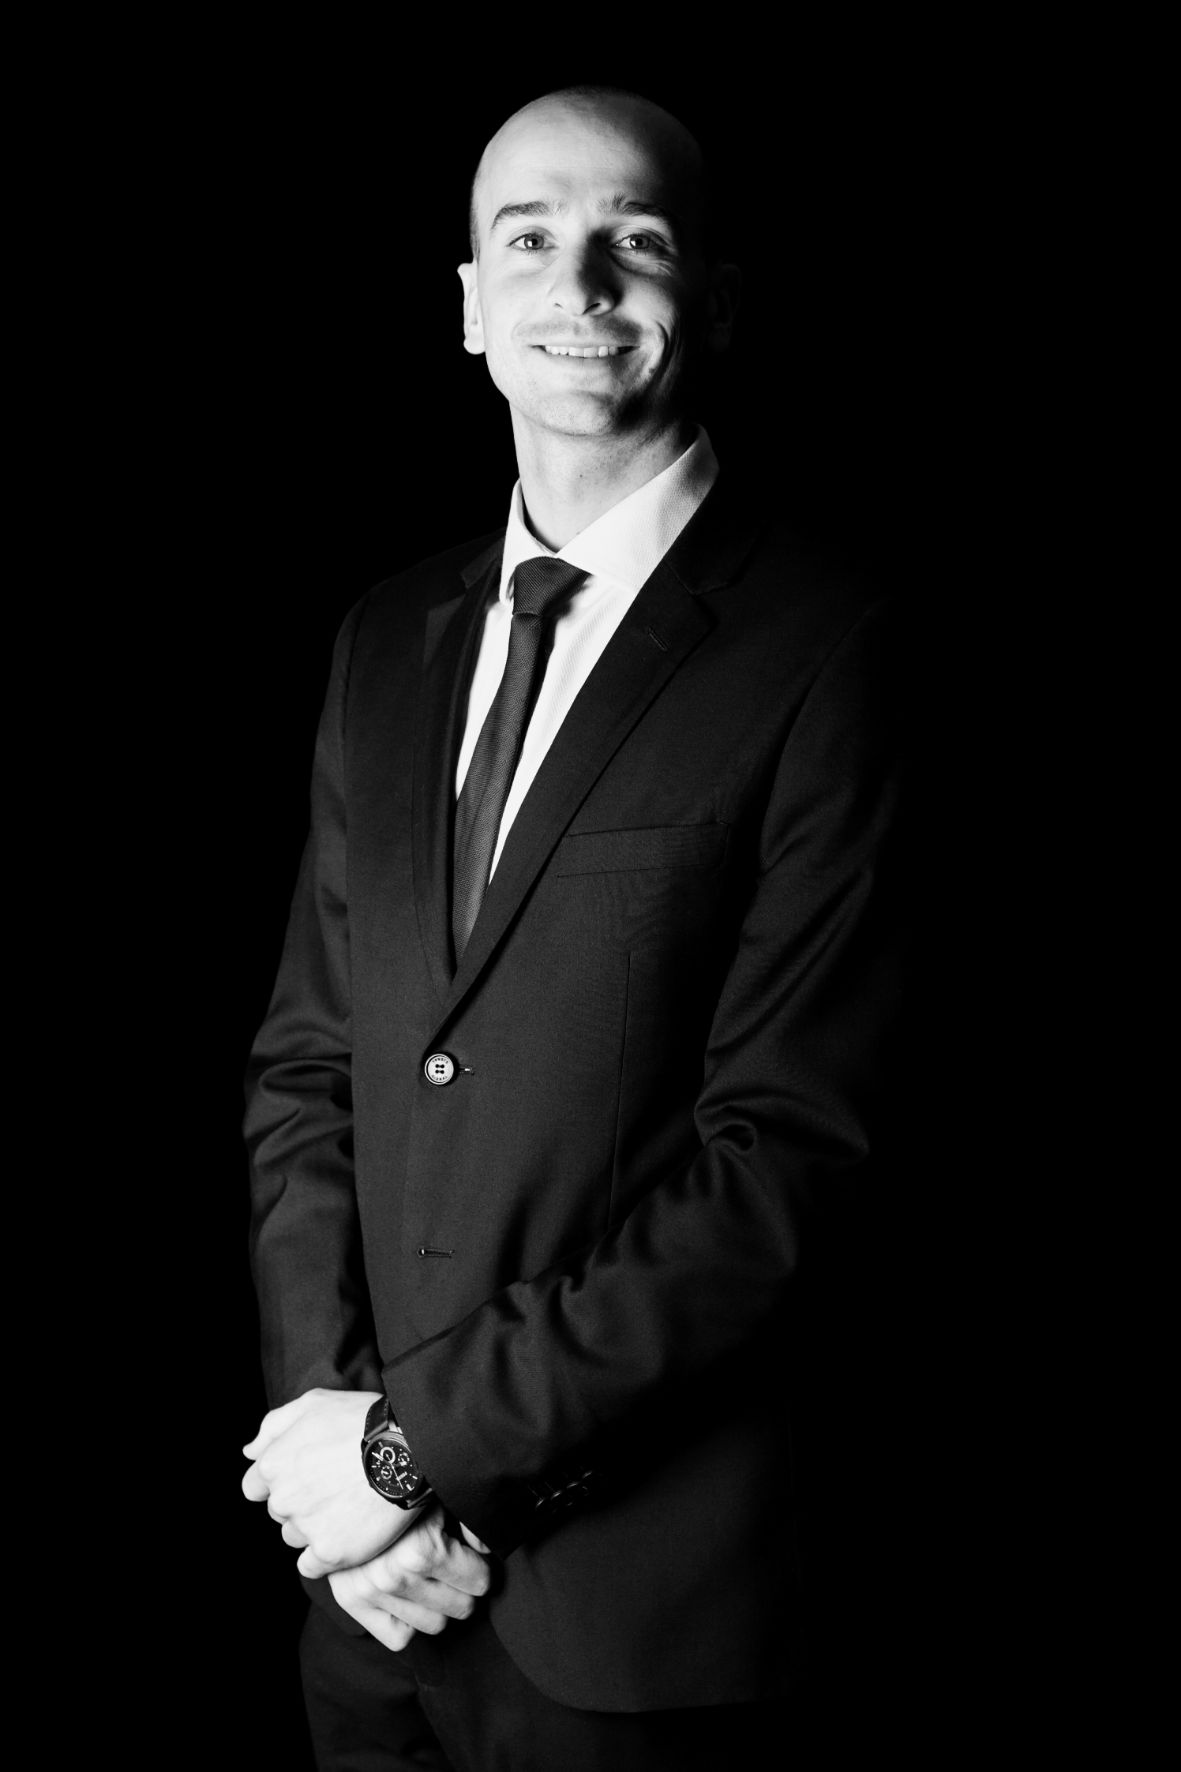 Justin Bainbridge, Commercial Property Broker